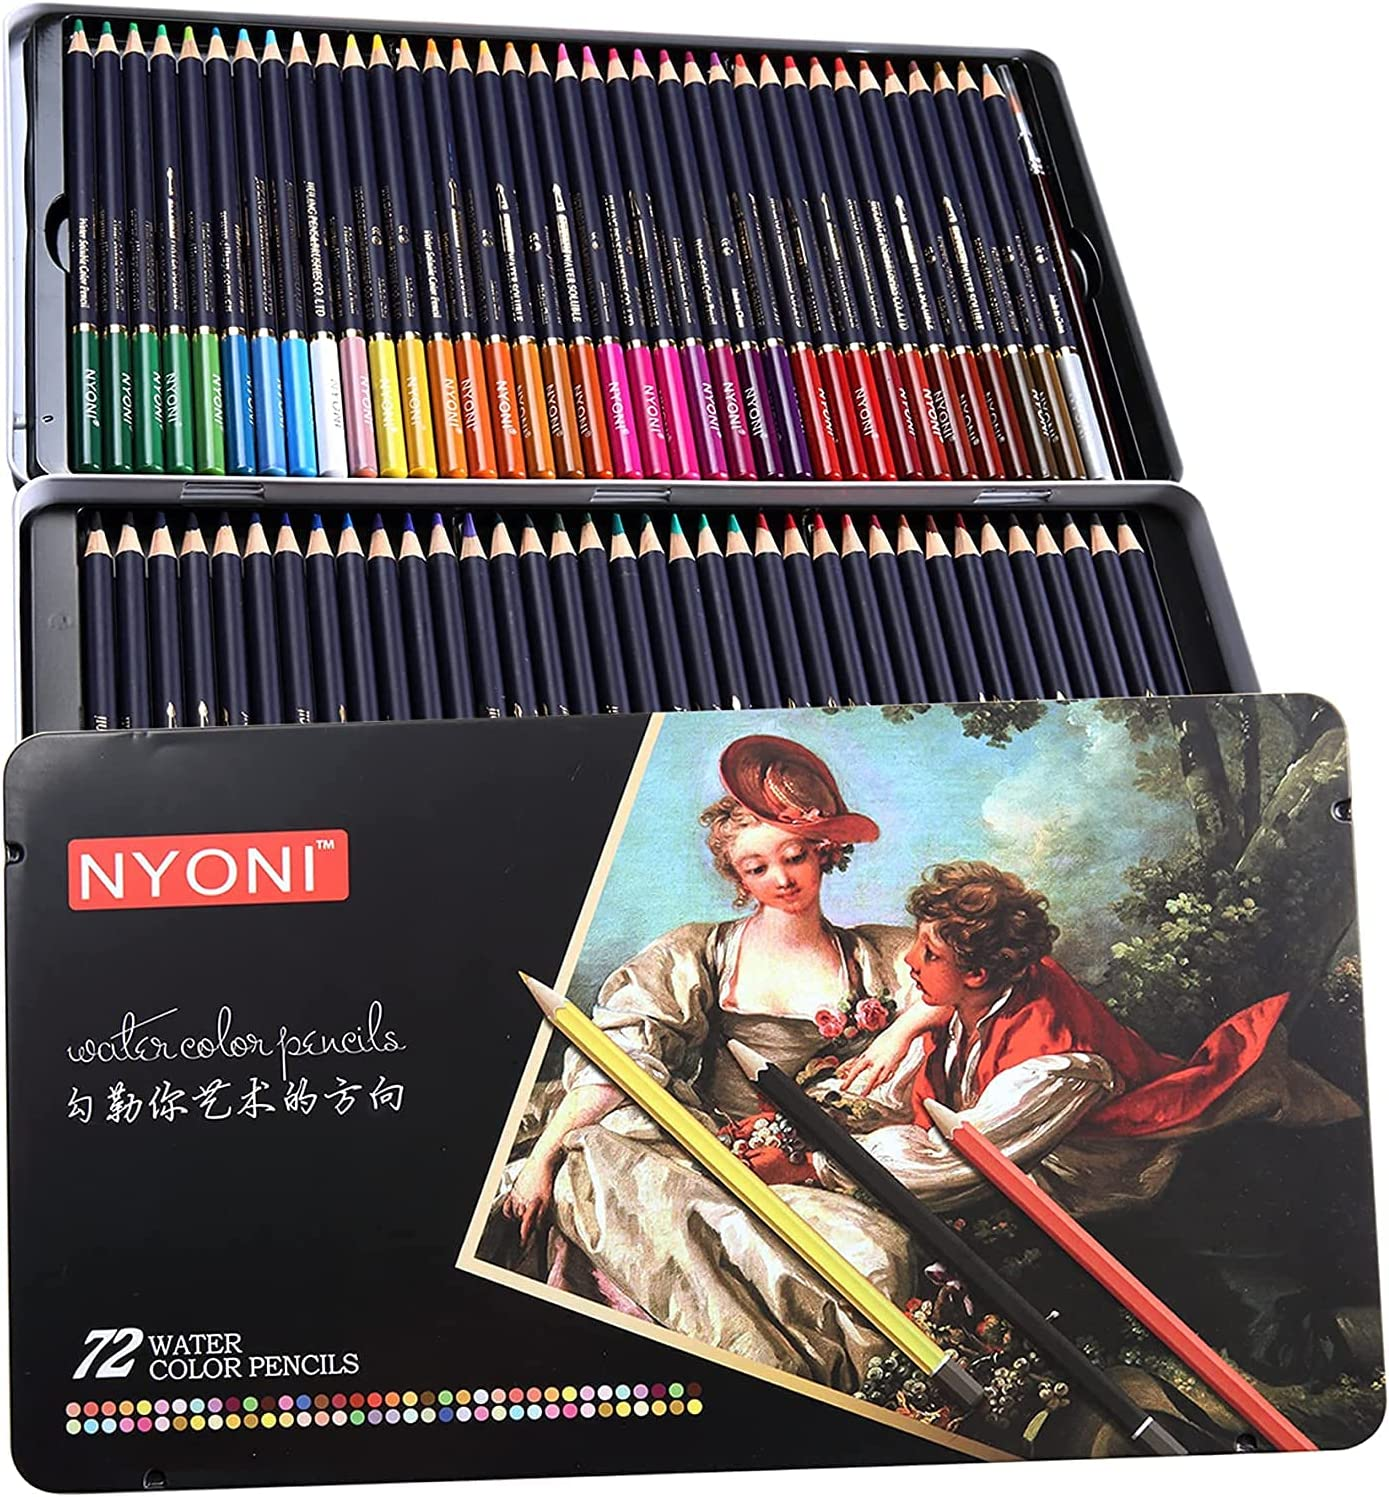 Nyoni Watercolor Pencils Set of Professional Colors for 1 year warranty Artis Austin Mall 72